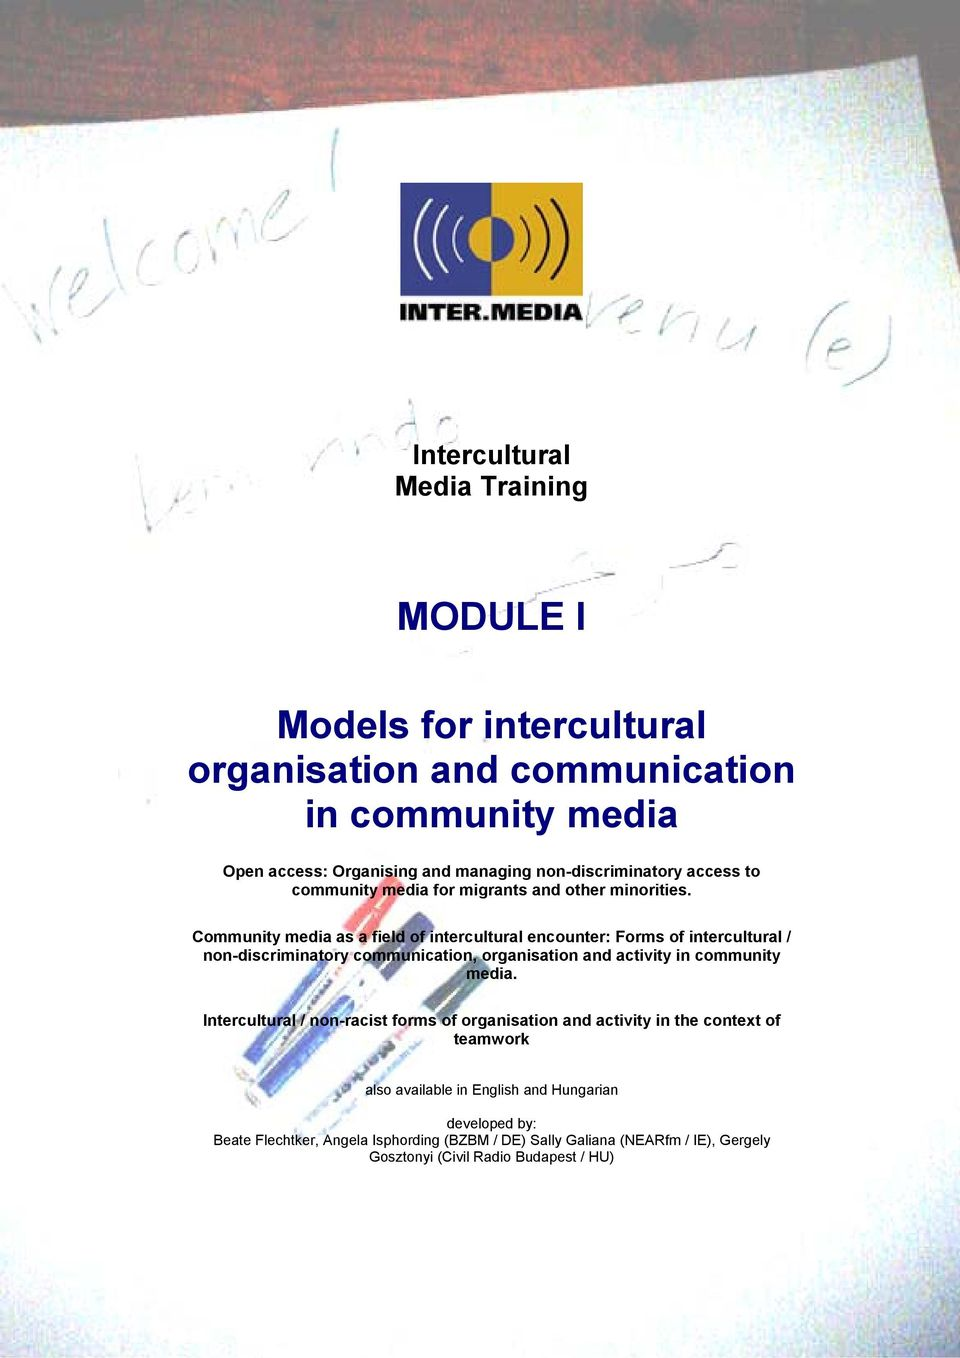 Community media as a field of intercultural encounter: Forms of intercultural / non-discriminatory communication, organisation and activity in community media.